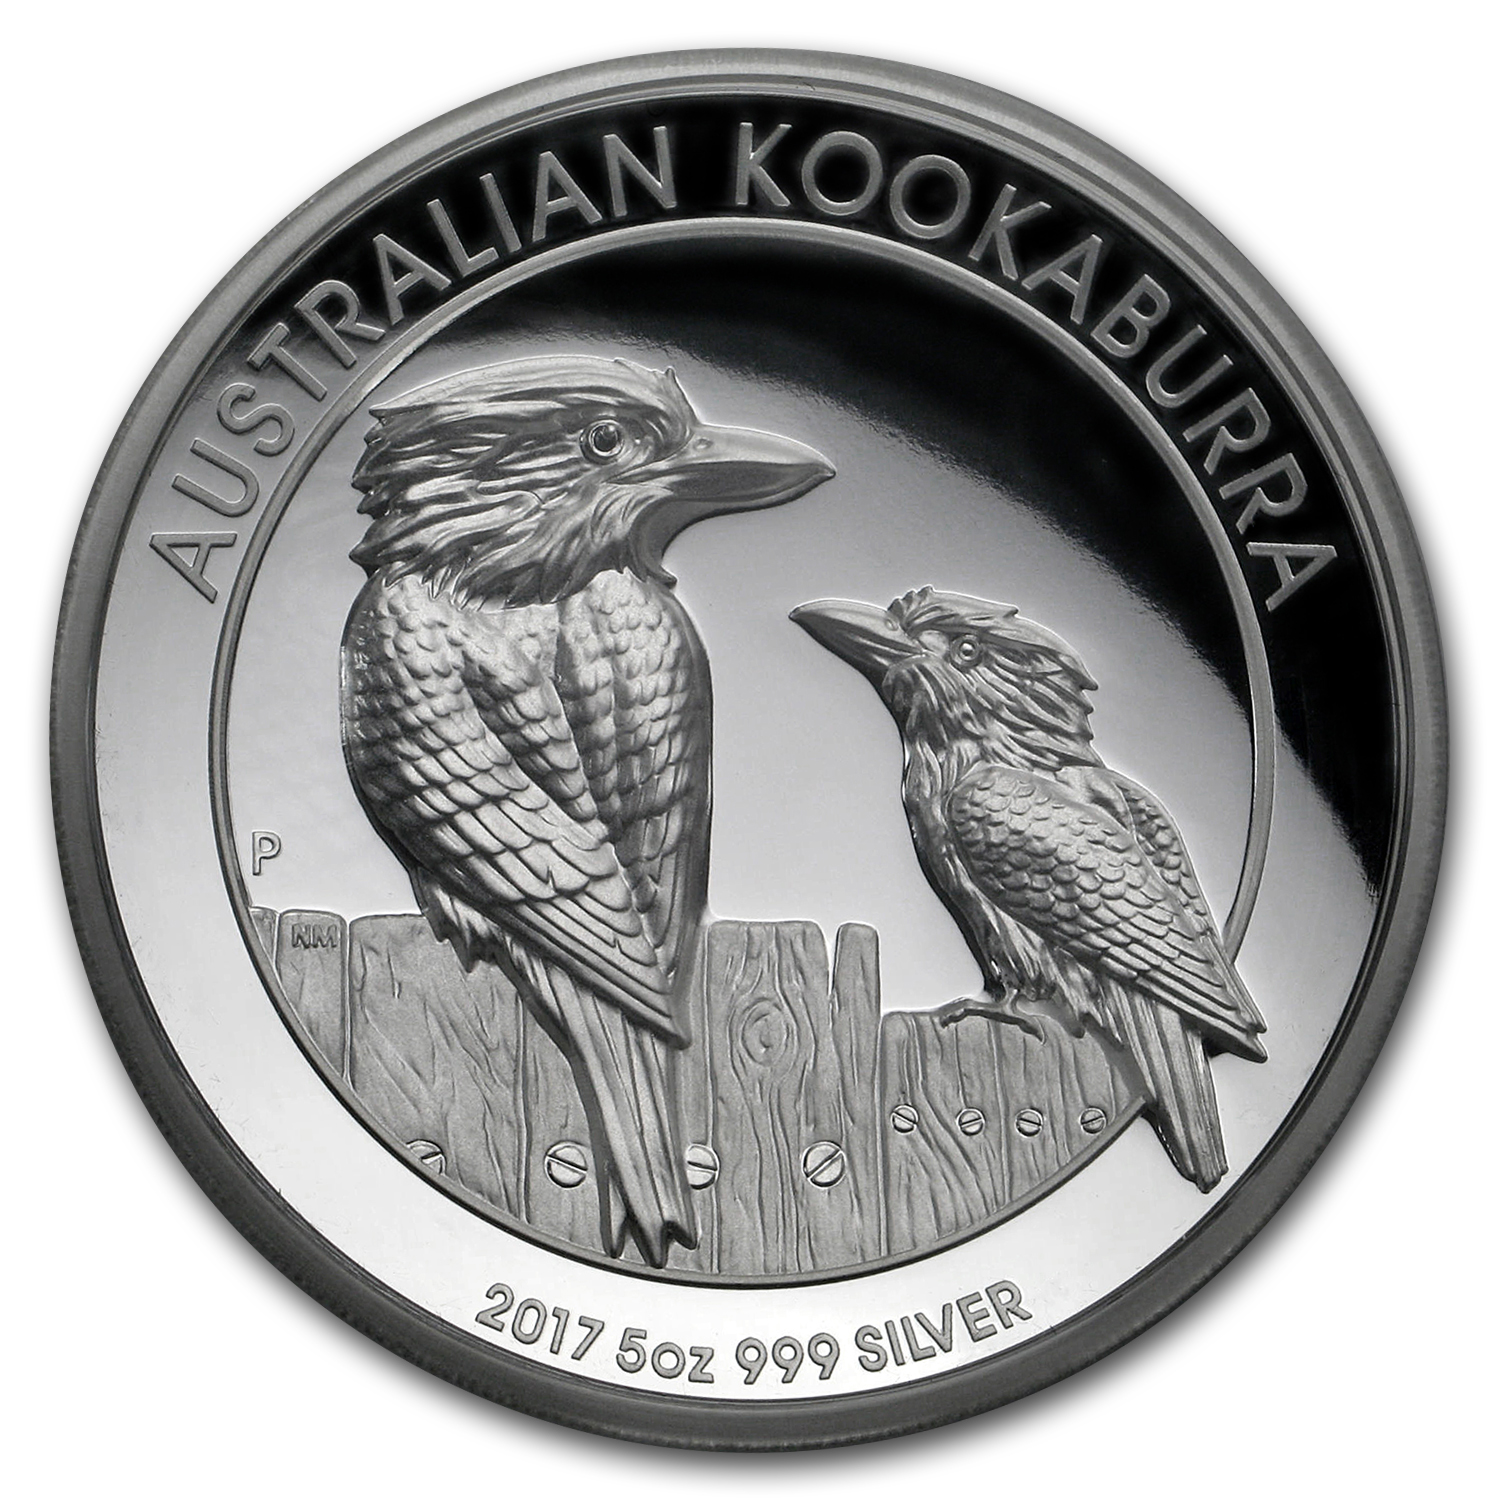 2017 Australia 5 oz Silver Kookaburra Proof (High Relief)